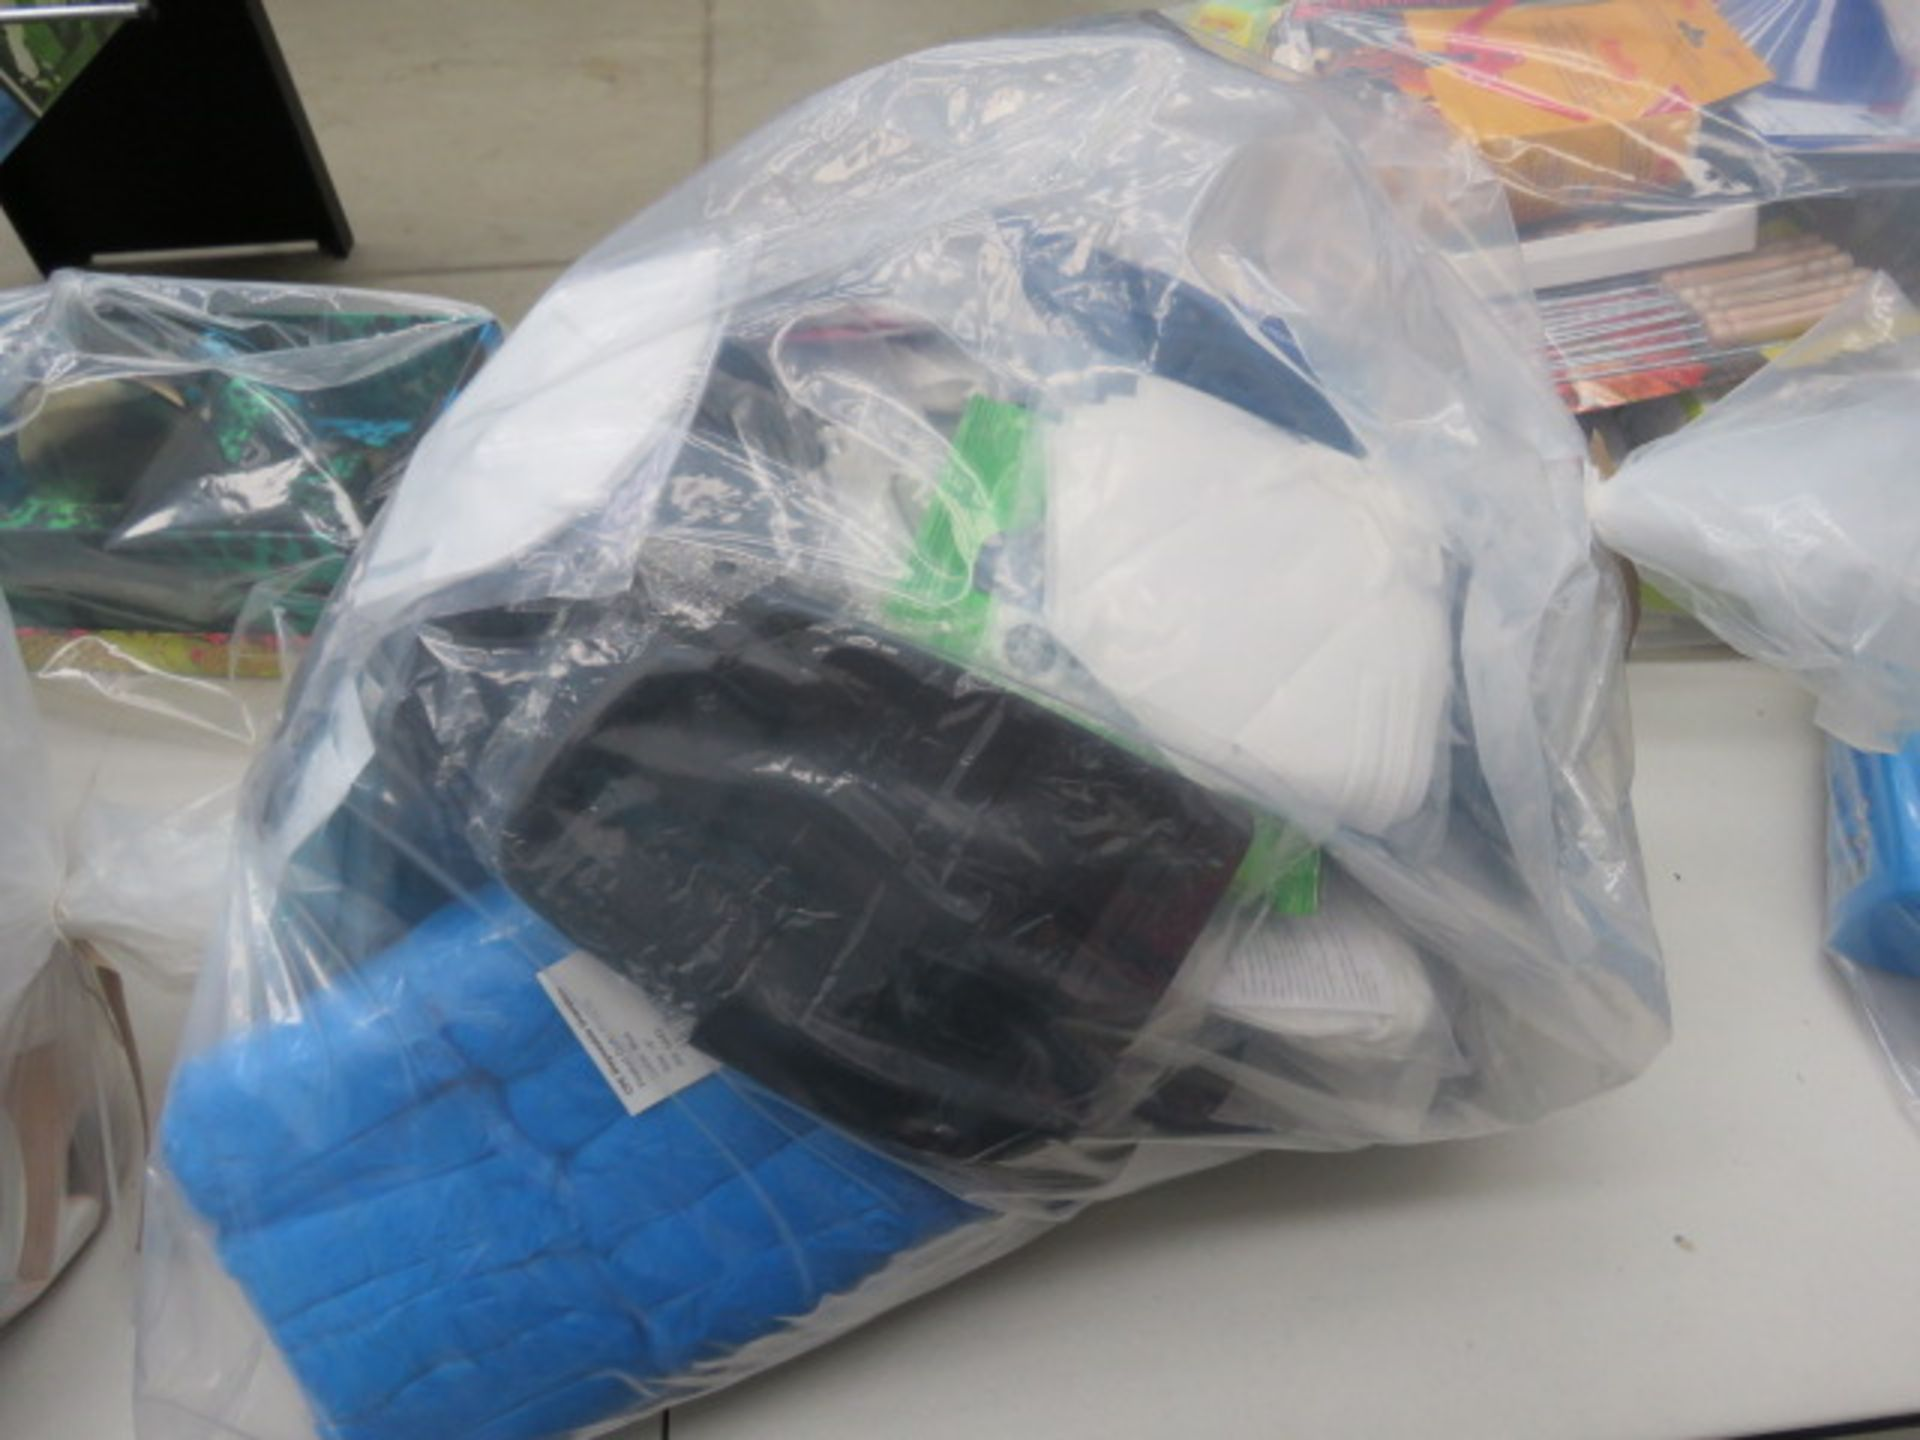 Lot 3570 - 3686 Quantity of personal protection face masks, ear savers for face masks, disposable aprons,